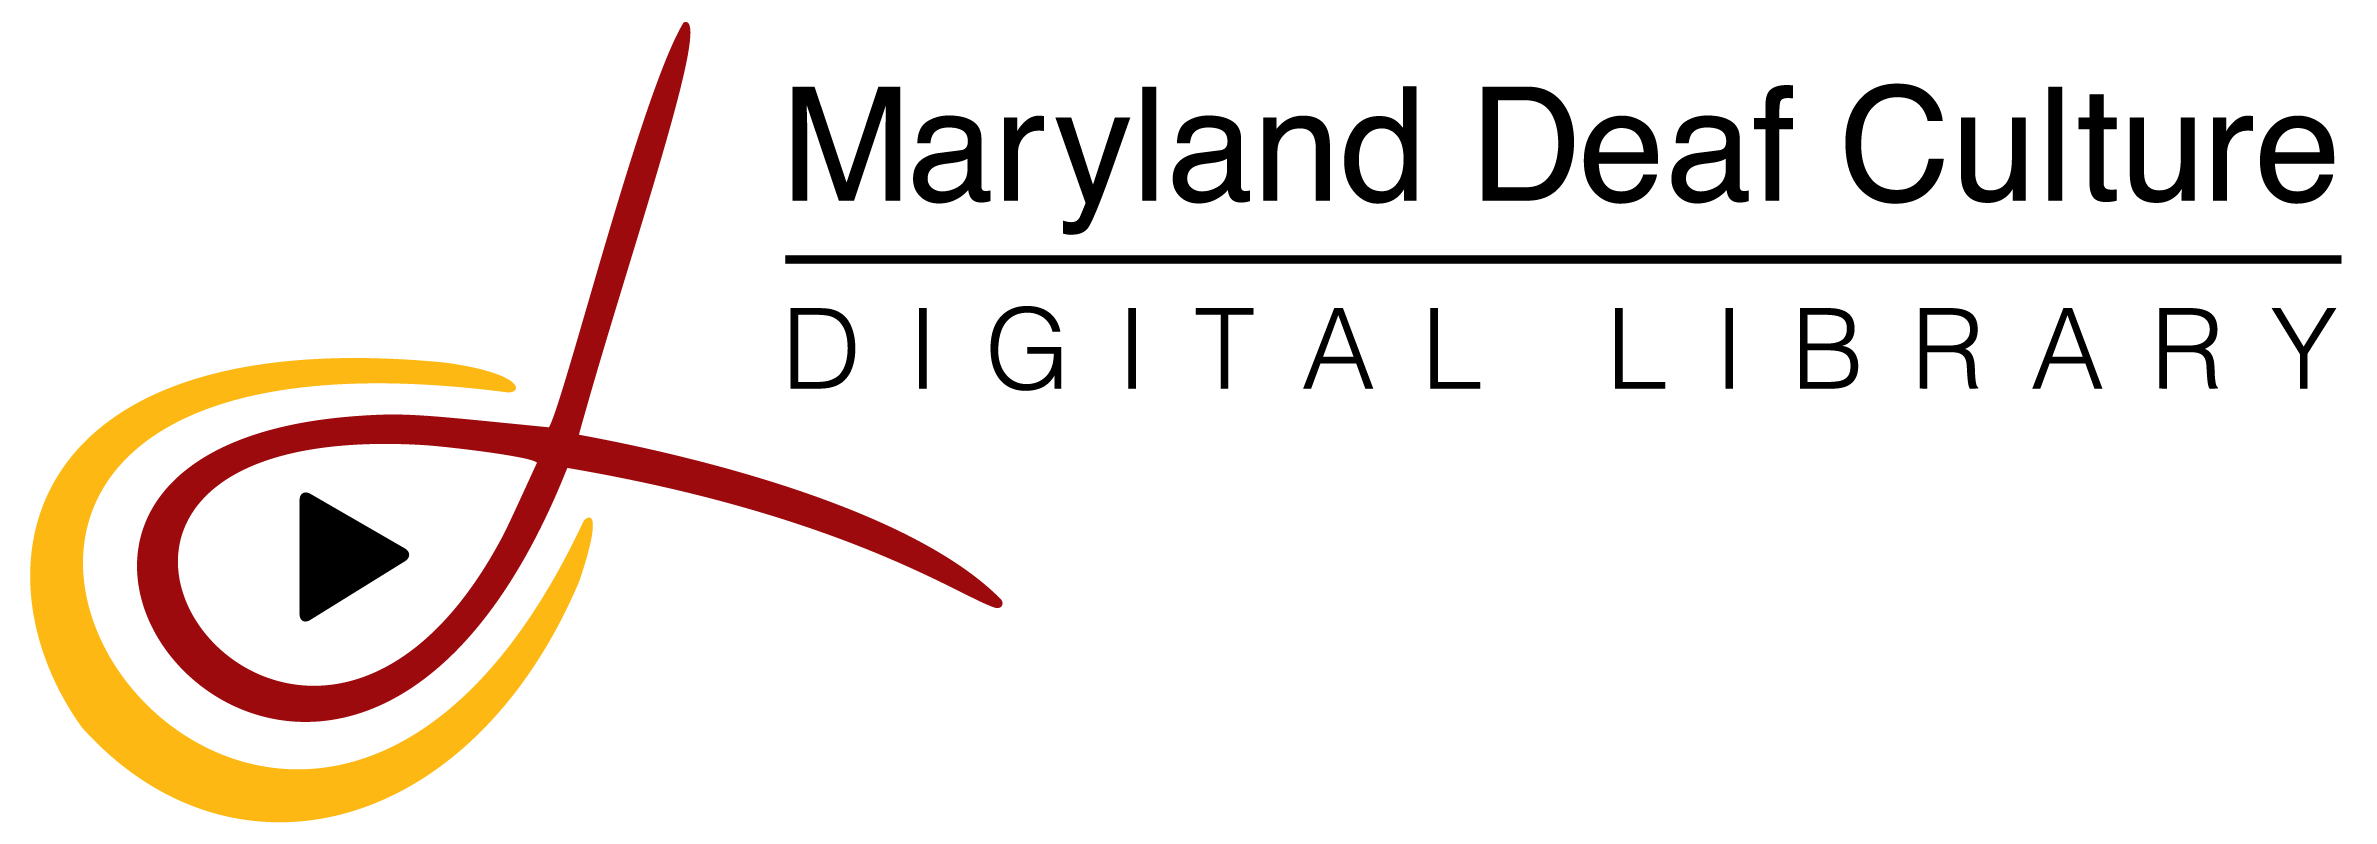 DCDL Logo (placeholder for resources without image)